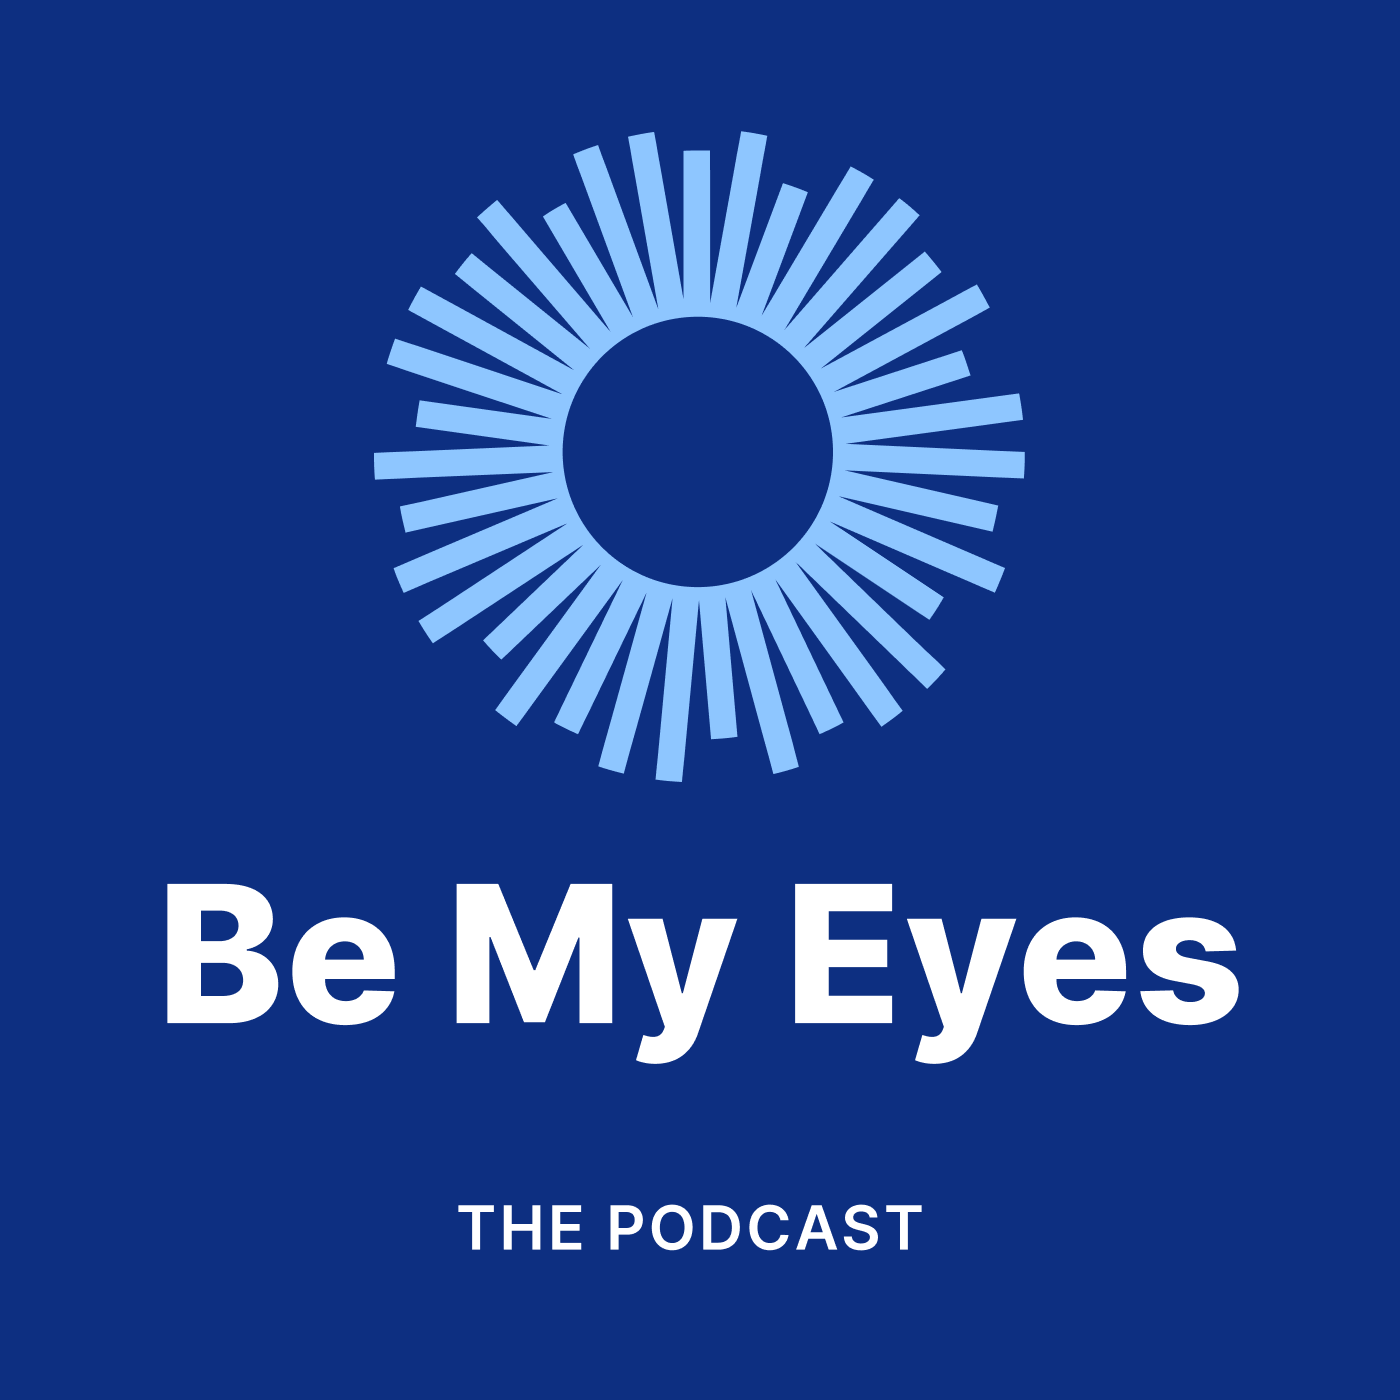 The Be My Eyes Podcast show art